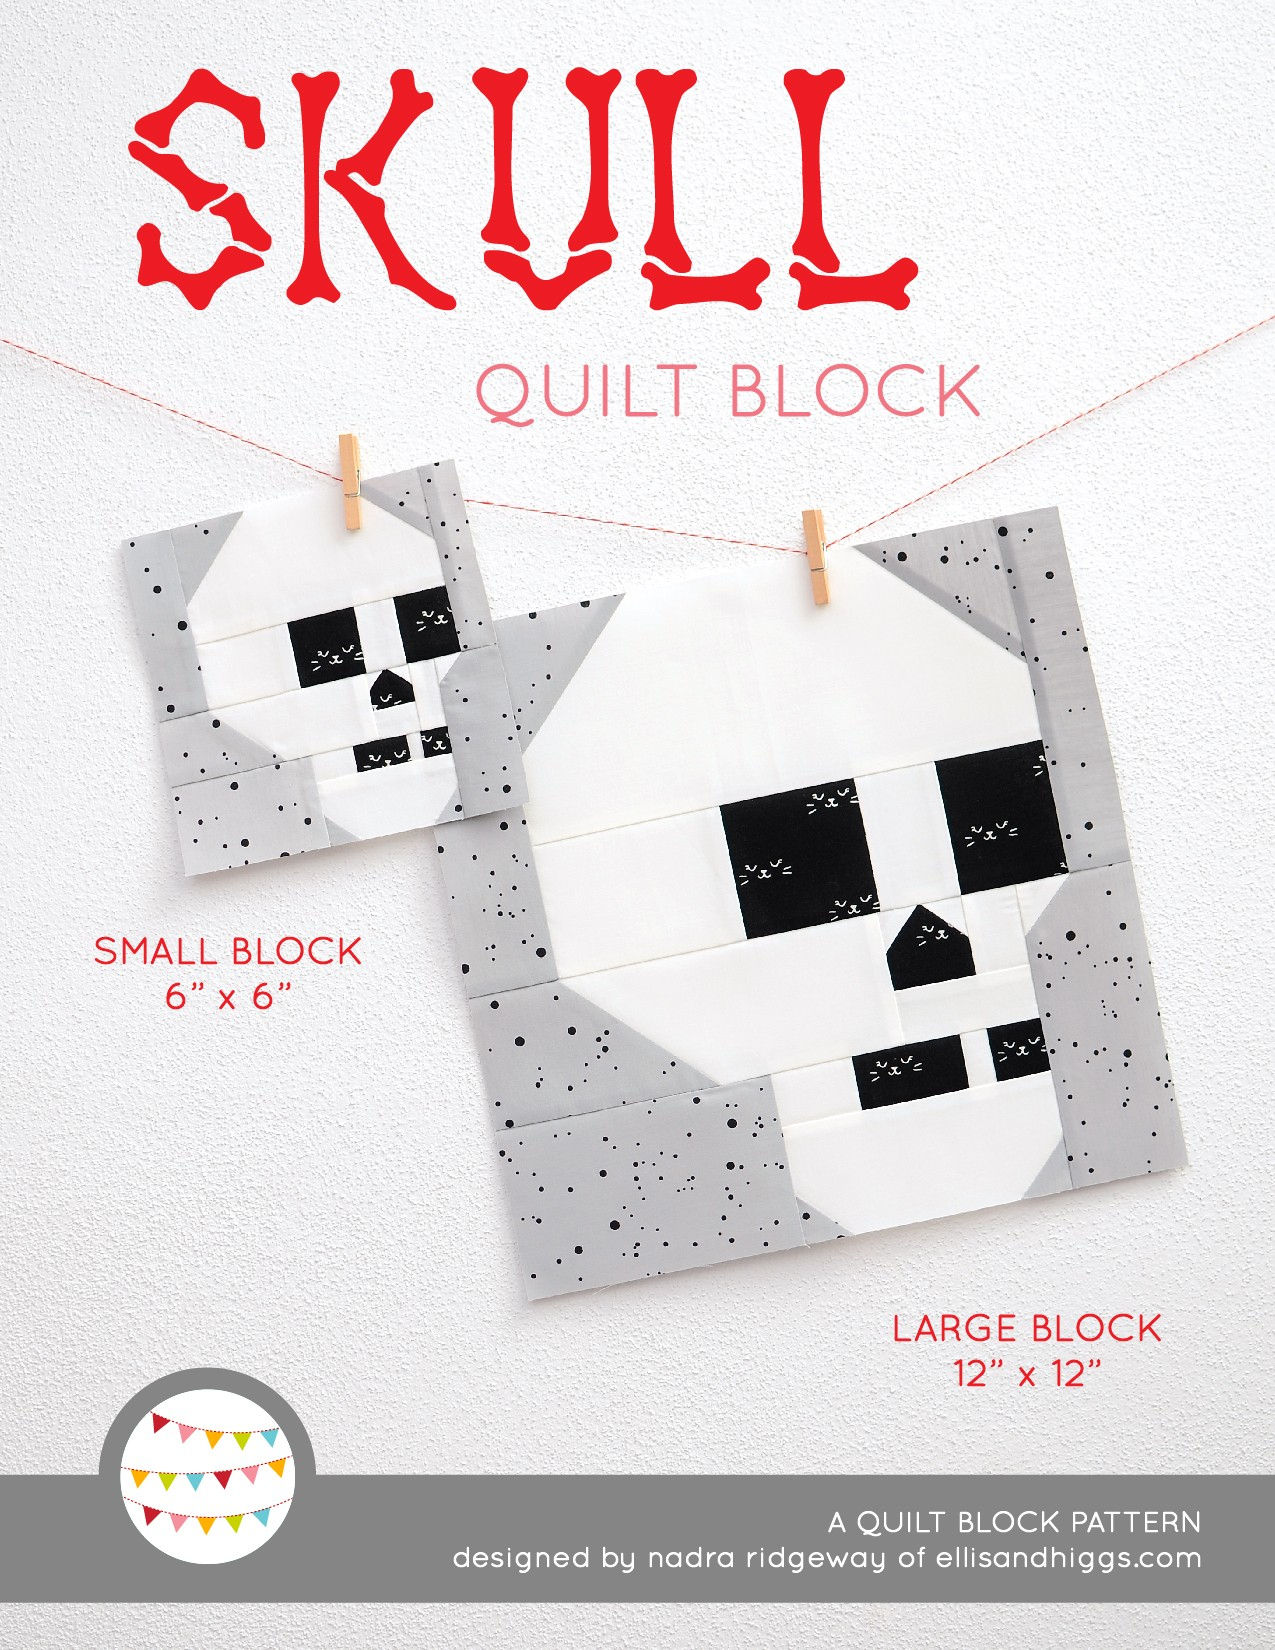 Skull quilt block in two sizes hanging on a wall